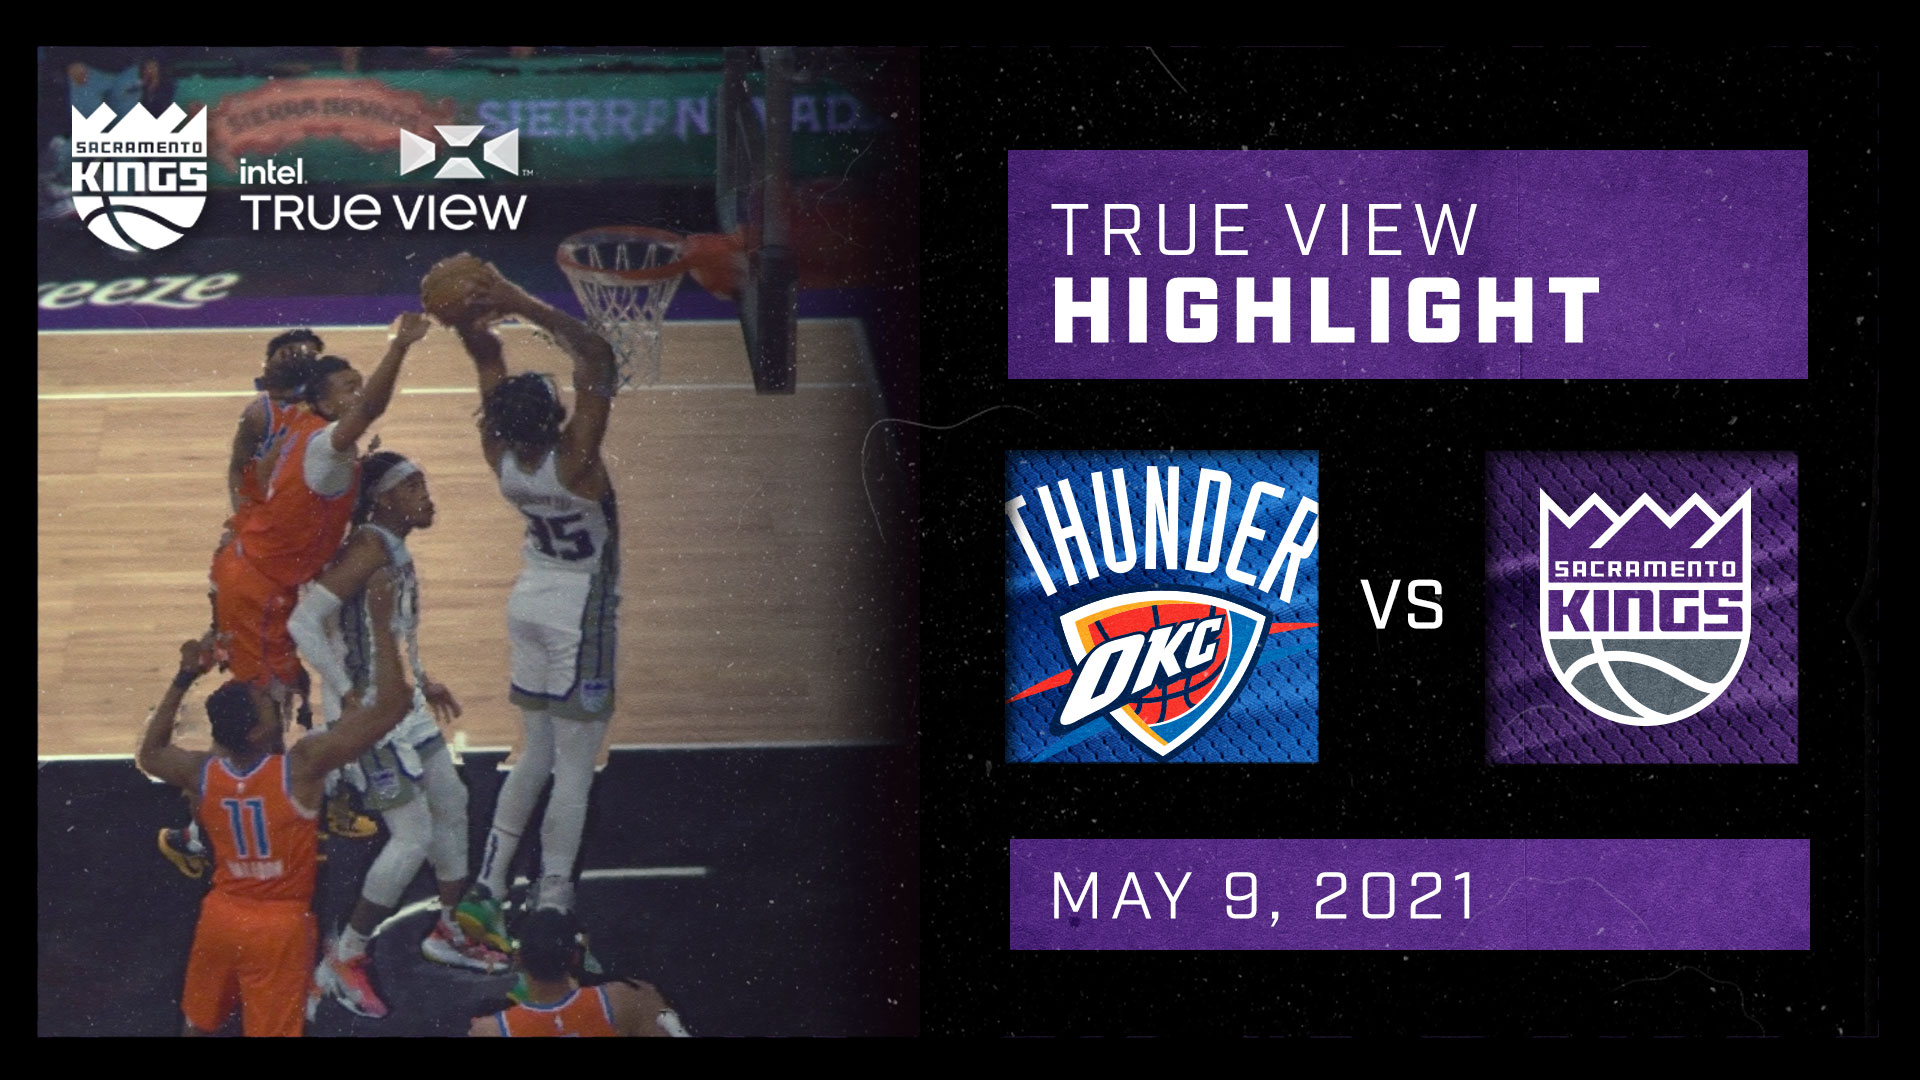 Intel True View Highlight - Bagley Putback Dunk vs Thunder 5.9.21